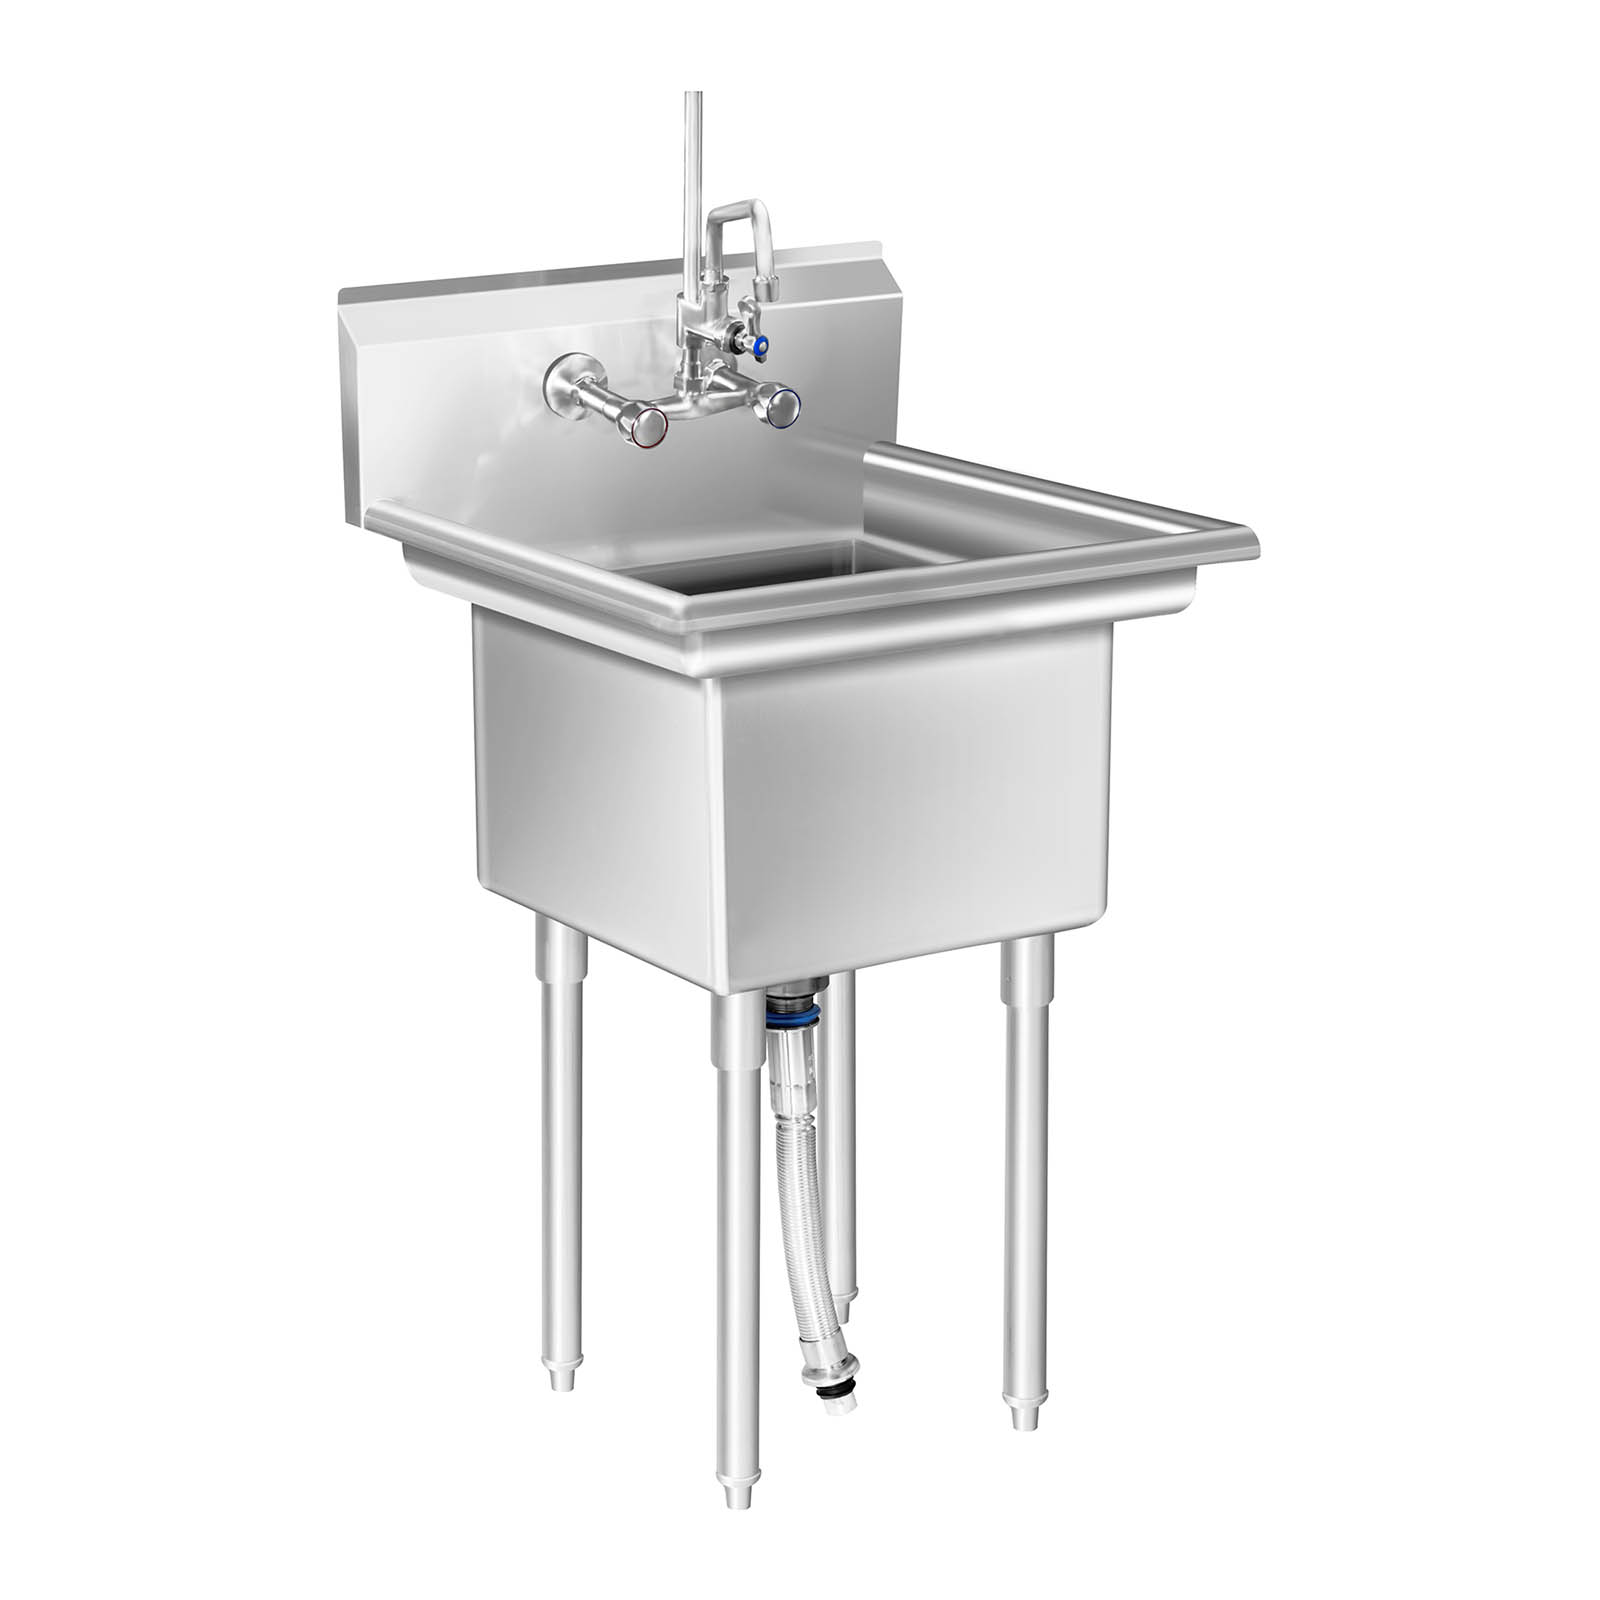 Commercial sink large kitchen sink unit 3 basin stainless steel commercial sink large kitchen sink unit 3 basin workwithnaturefo